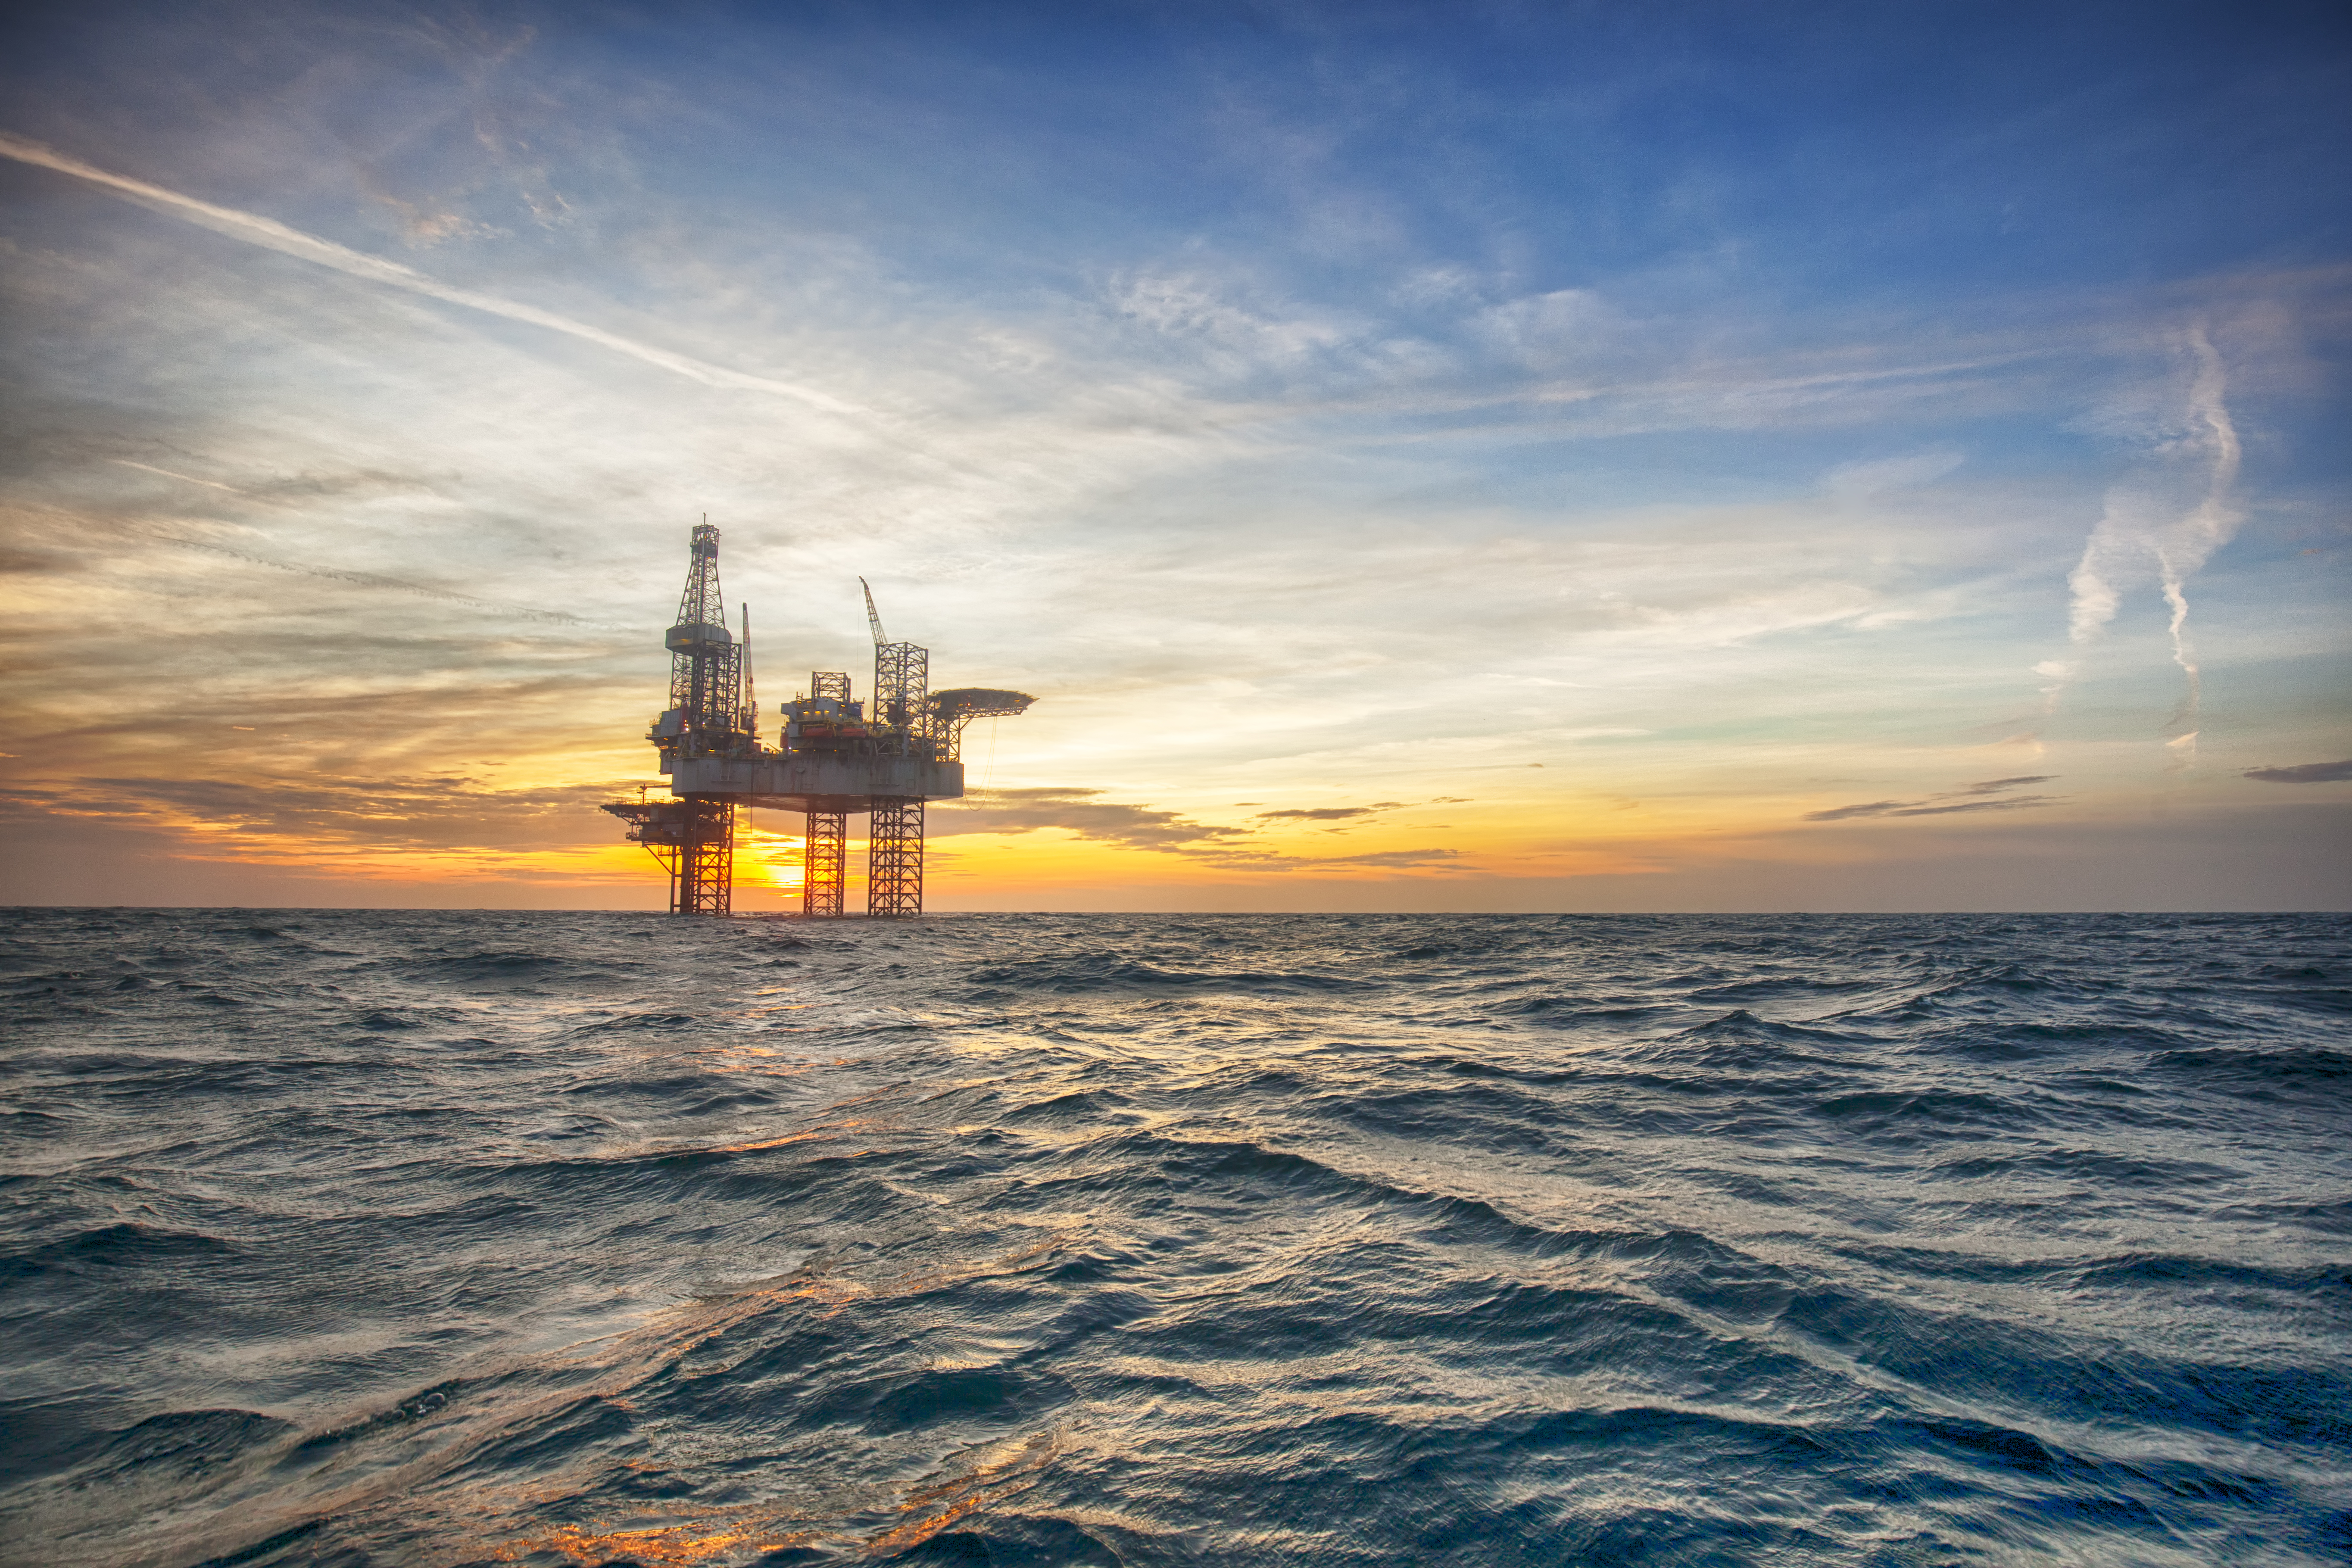 Image of an offshore drilling platform